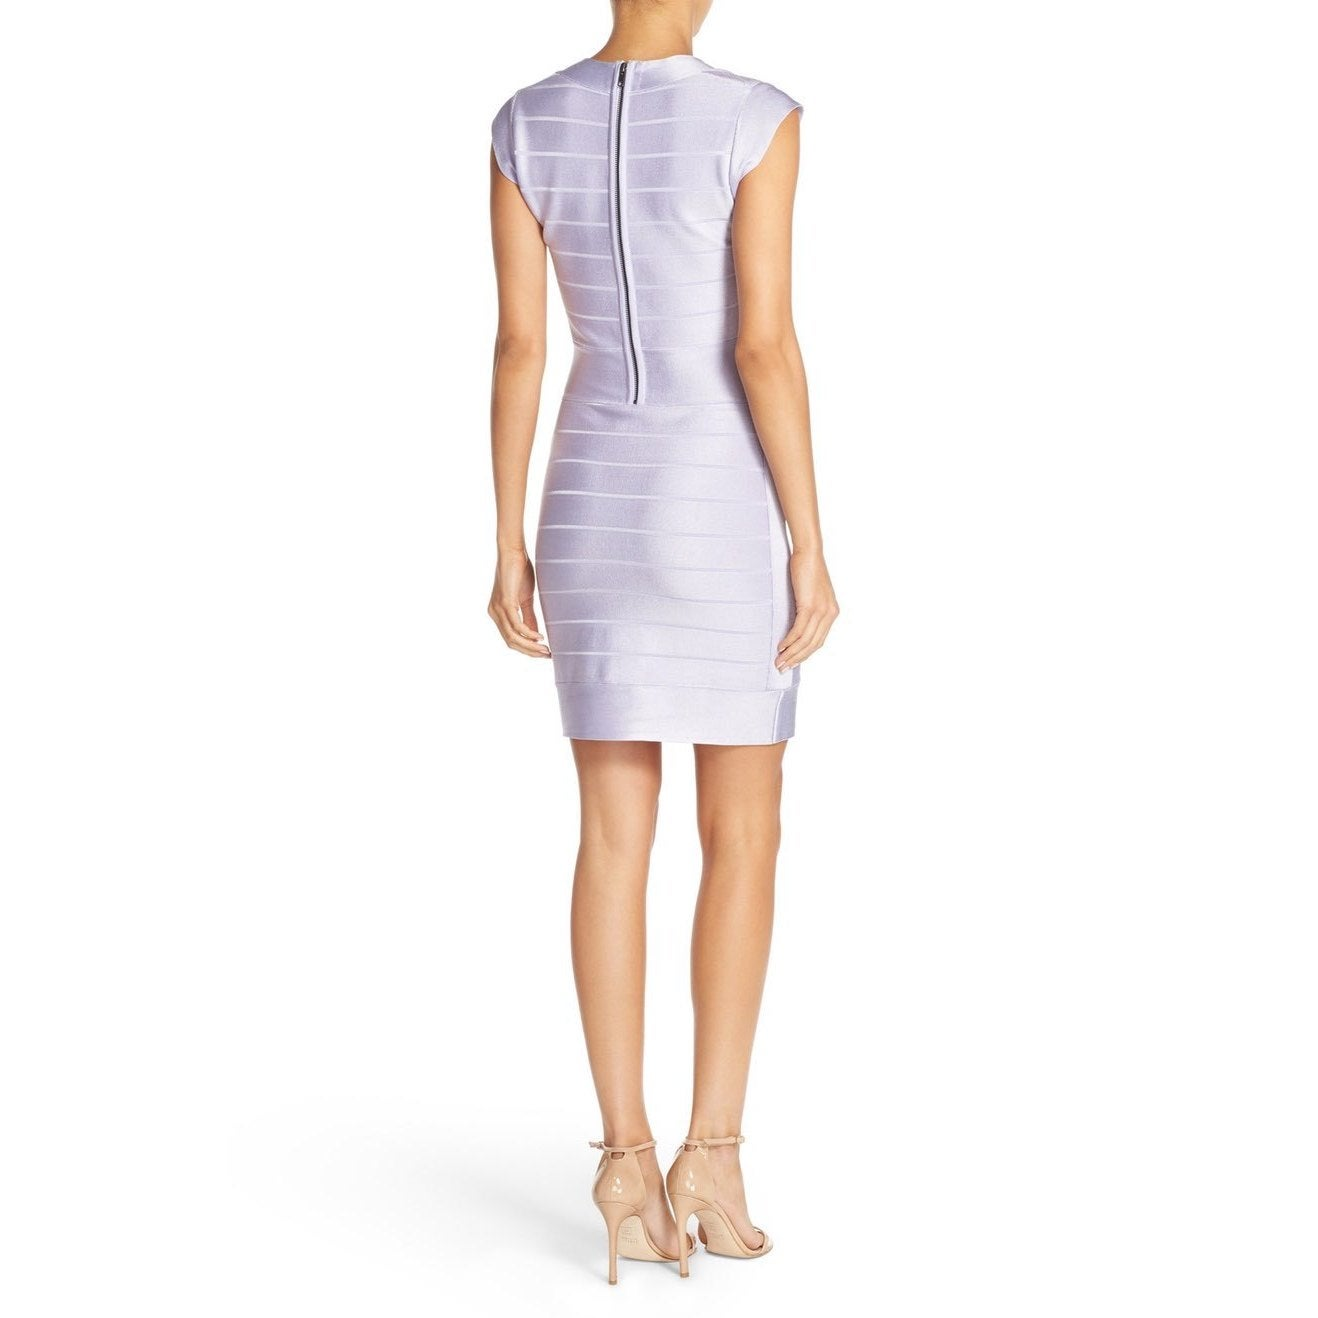 b8bec71e35d9 Shop French Connection Women s Miami Spotlight Bandage Dress - Free  Shipping Today - Overstock - 15410971